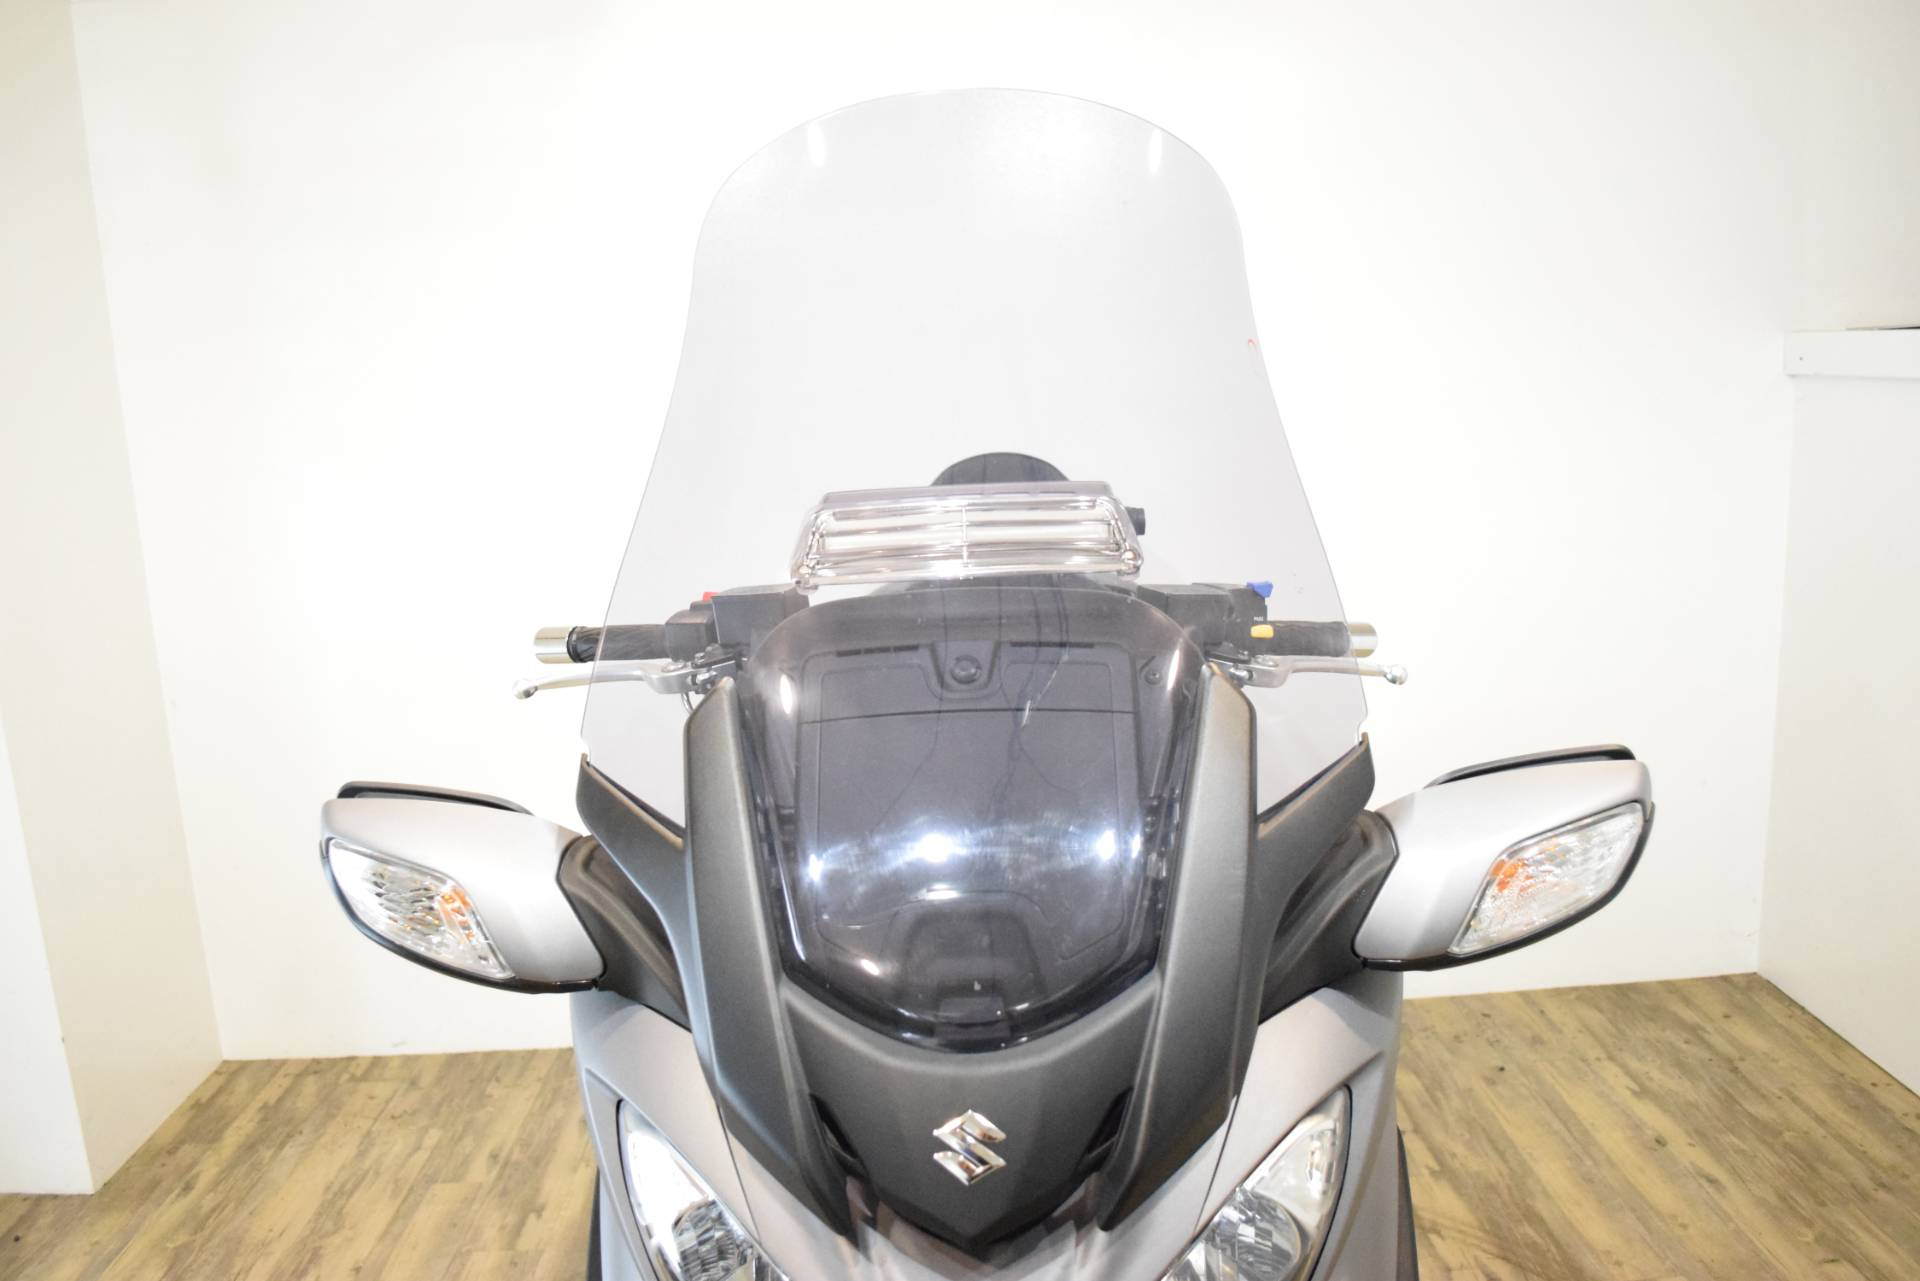 2014 Suzuki Burgman™ 650 ABS in Wauconda, Illinois - Photo 12